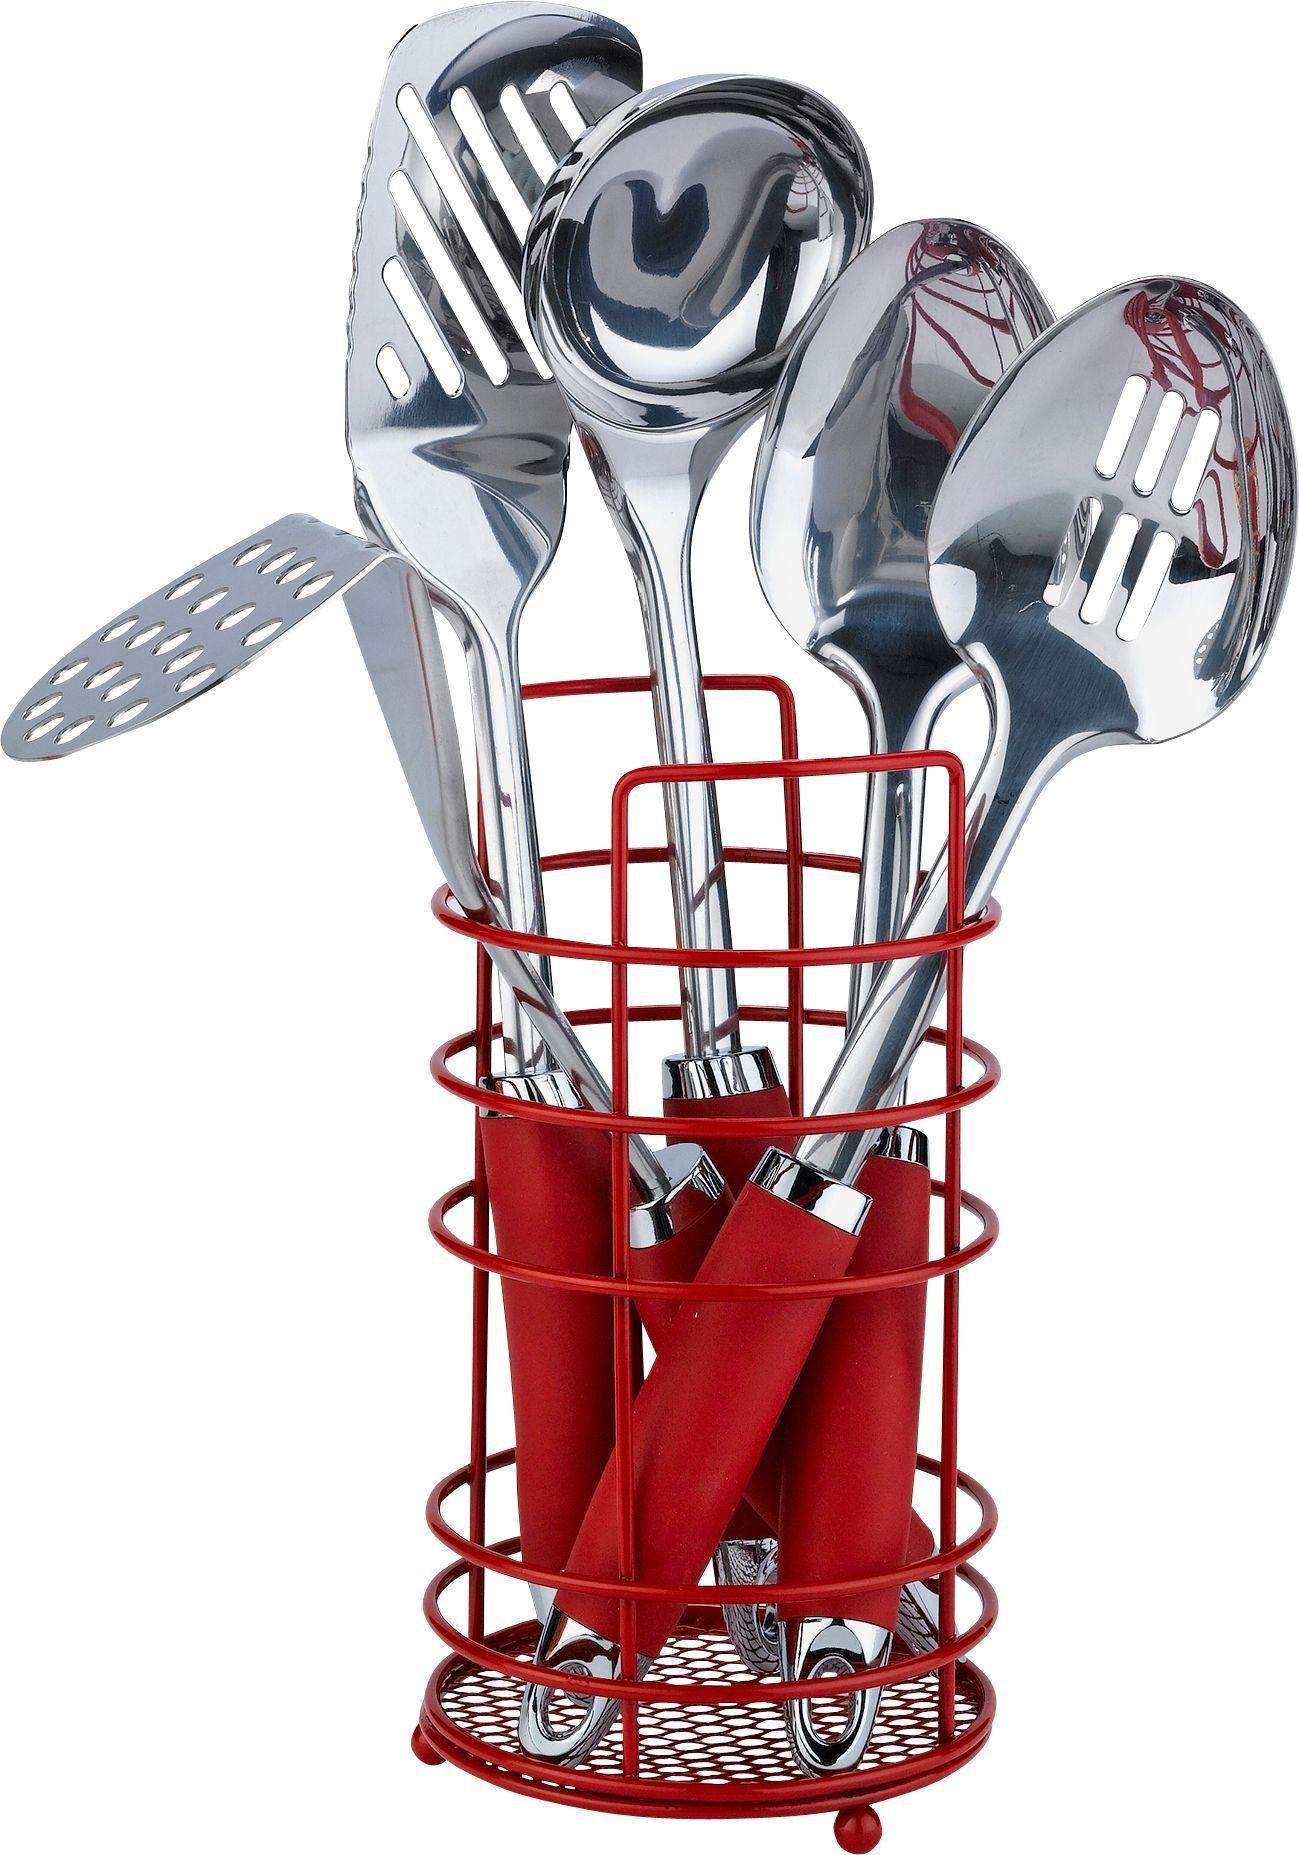 colourmatch-stainless-steel-5-pc-kitchen-utensils-set-red